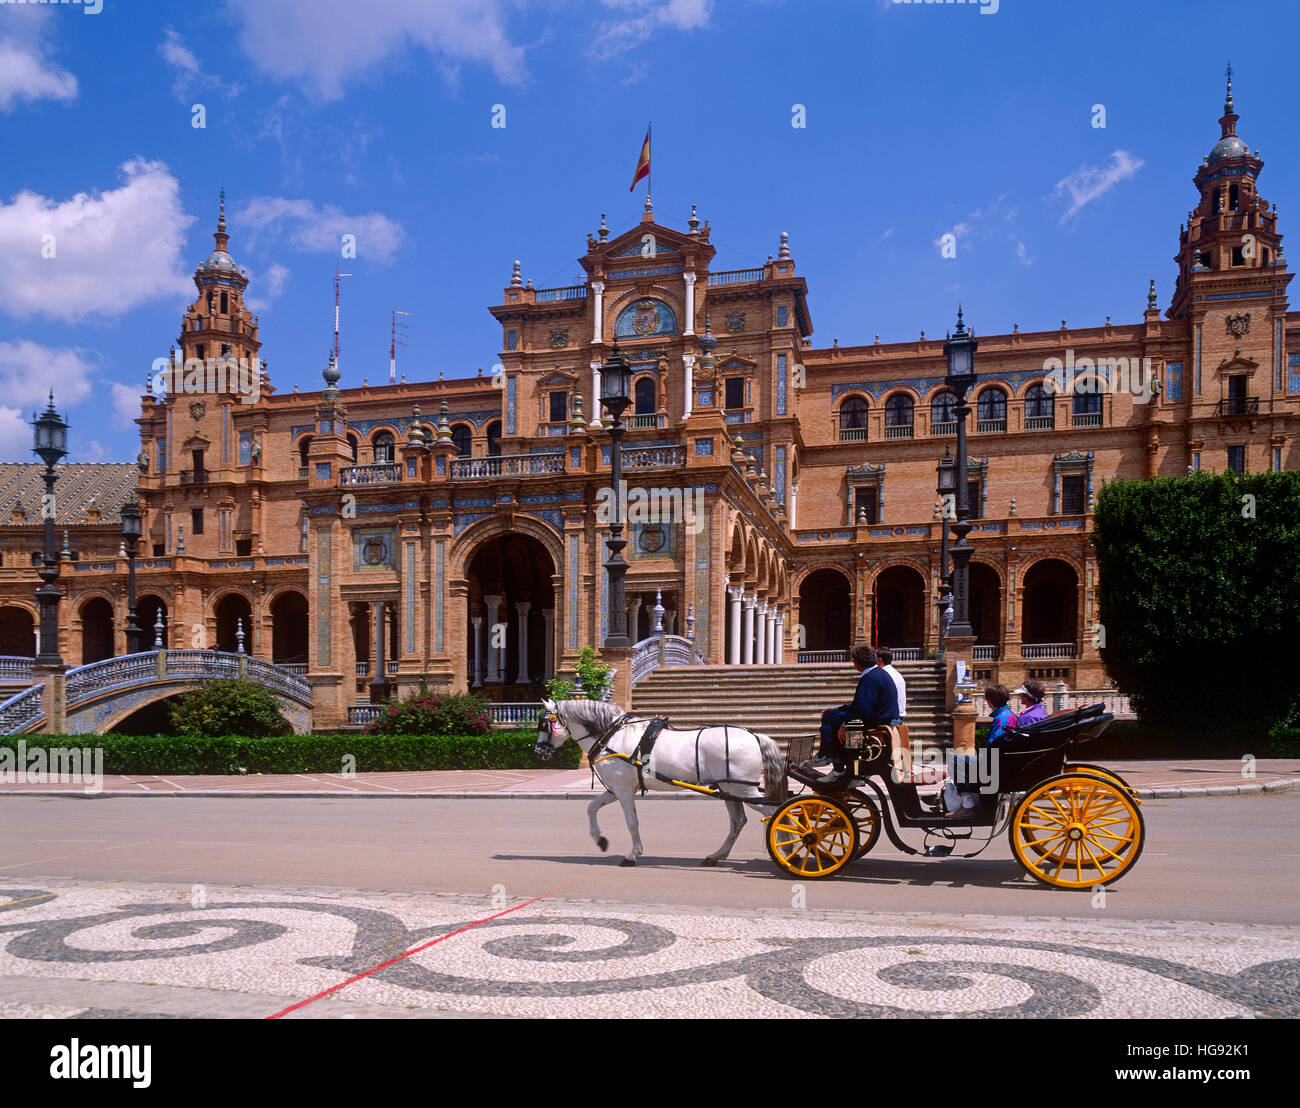 Tourists in Horse drawn carriage at the Plaza de Espana, Seville, Andalucia, Spain - Stock Image